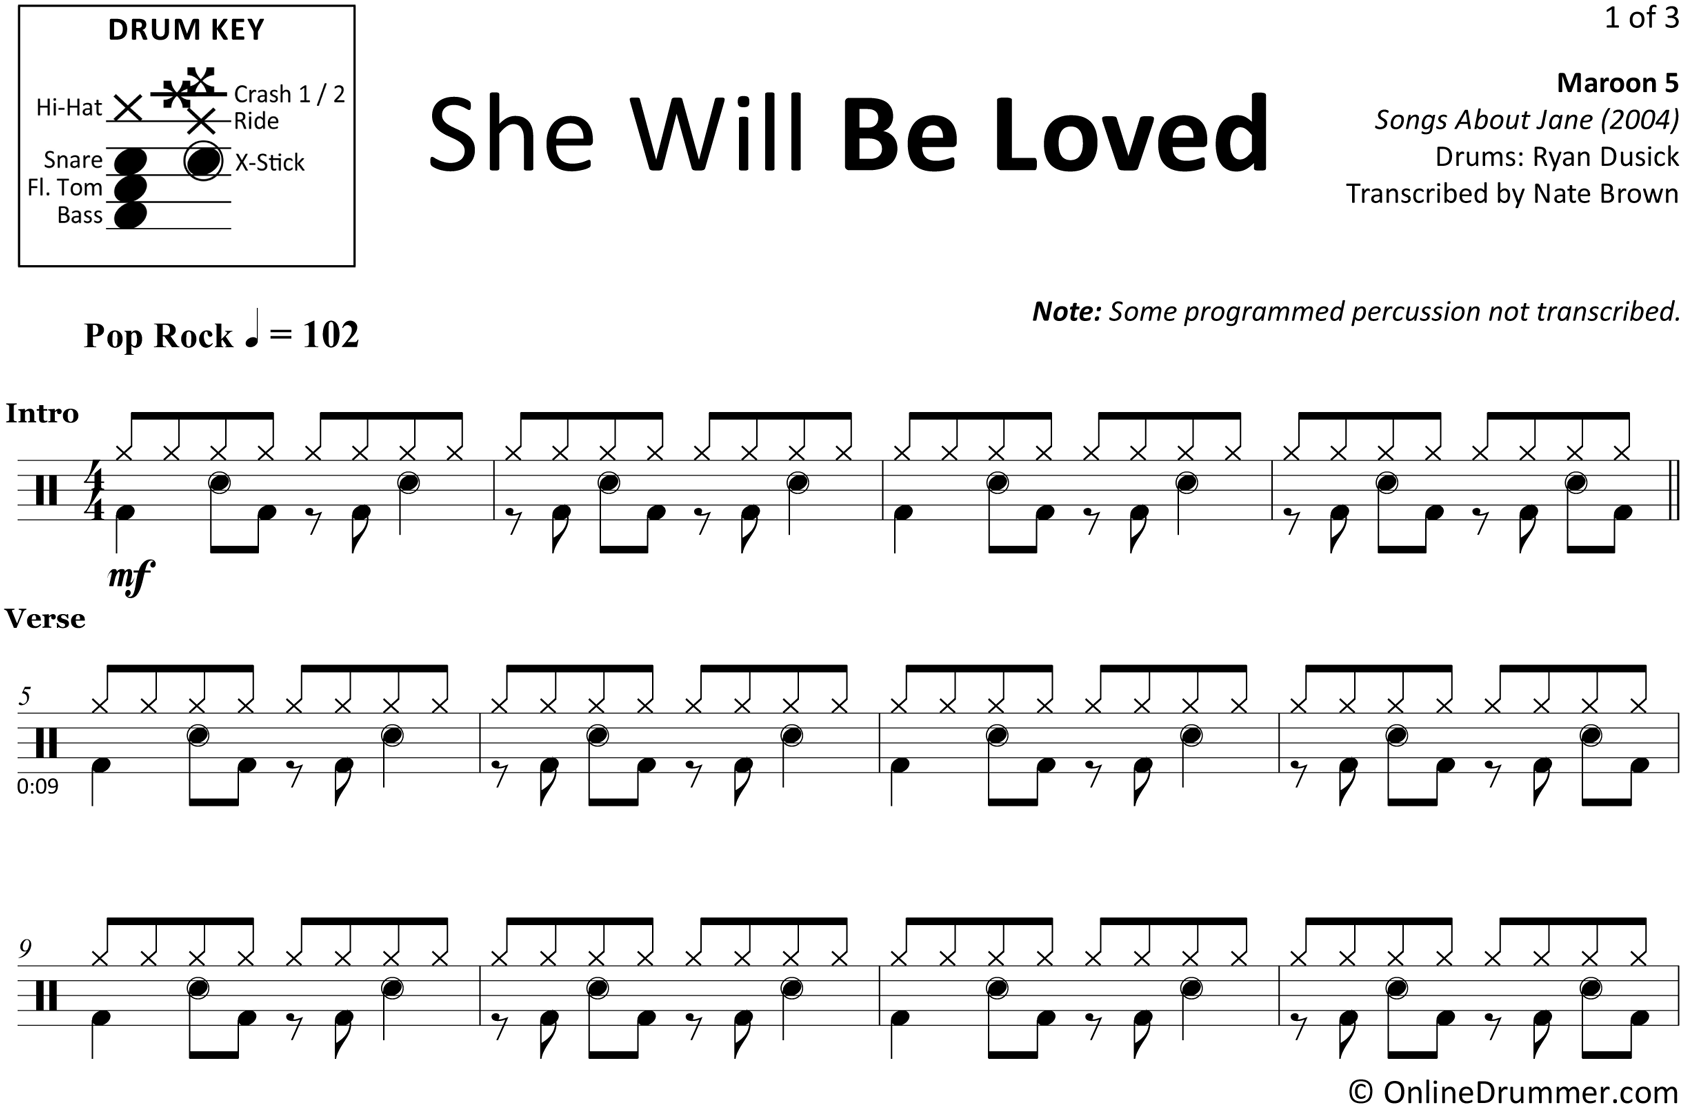 She Will Be Loved - Maroon 5 - Drum Sheet Music